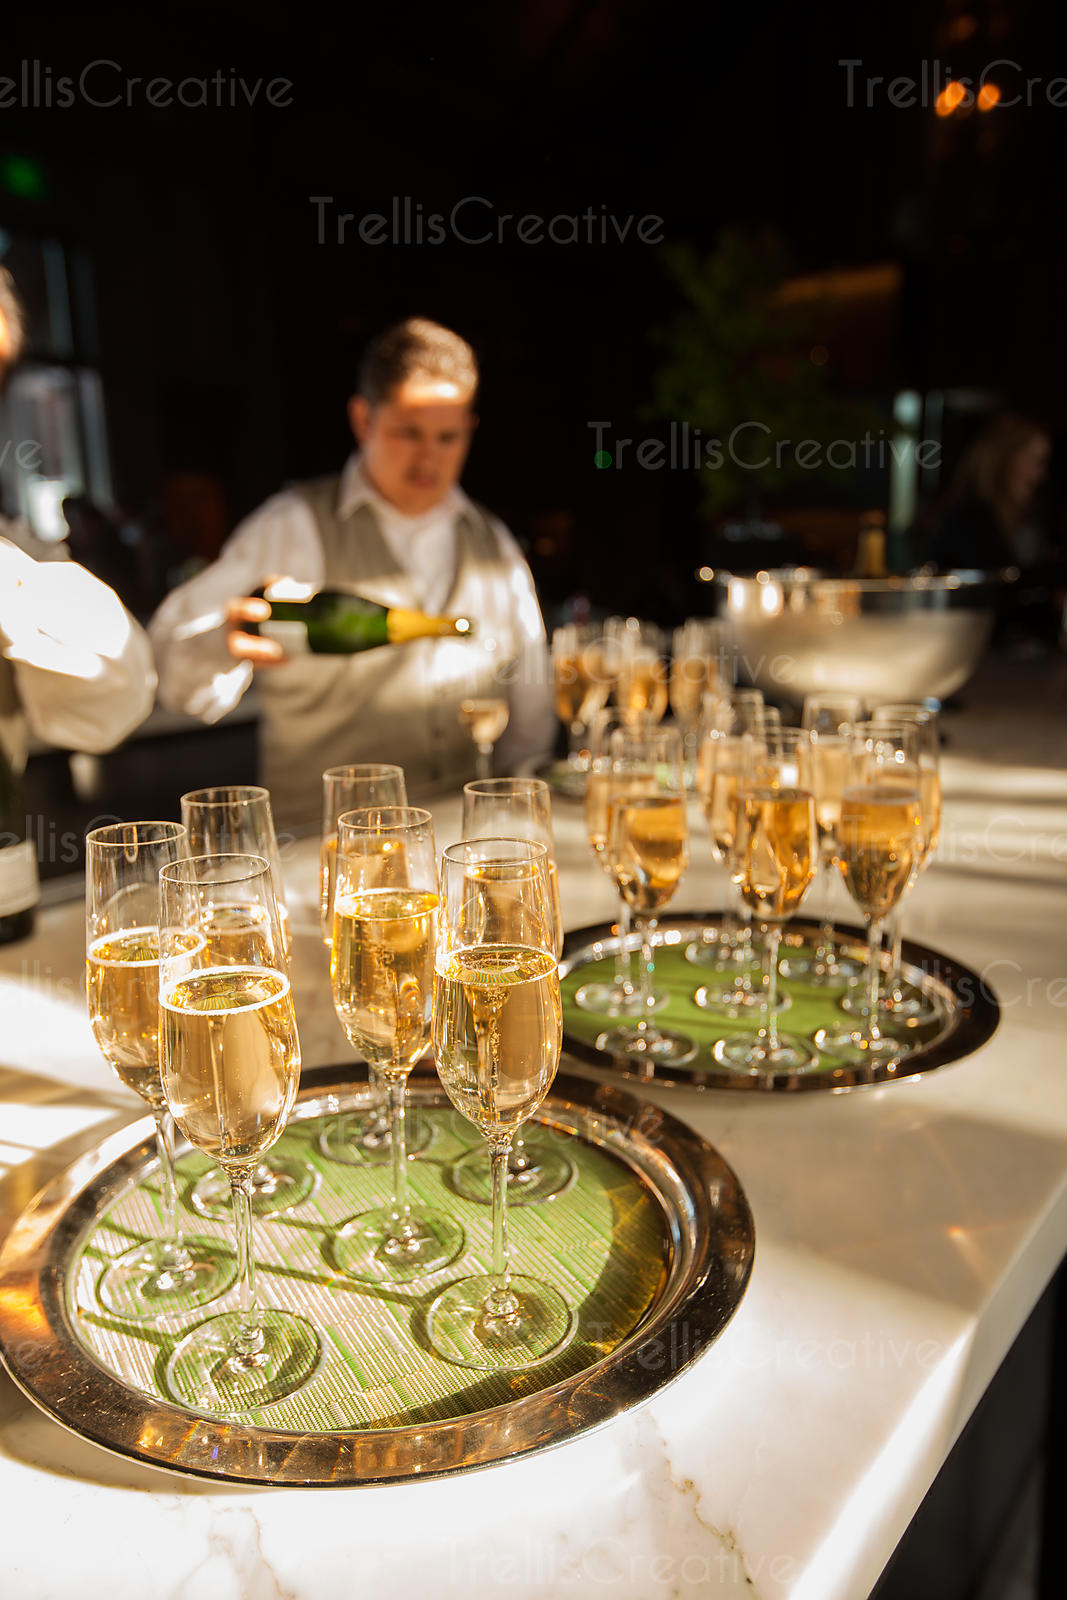 A server fills flutes of champagne and sparkling wine for an elegant party